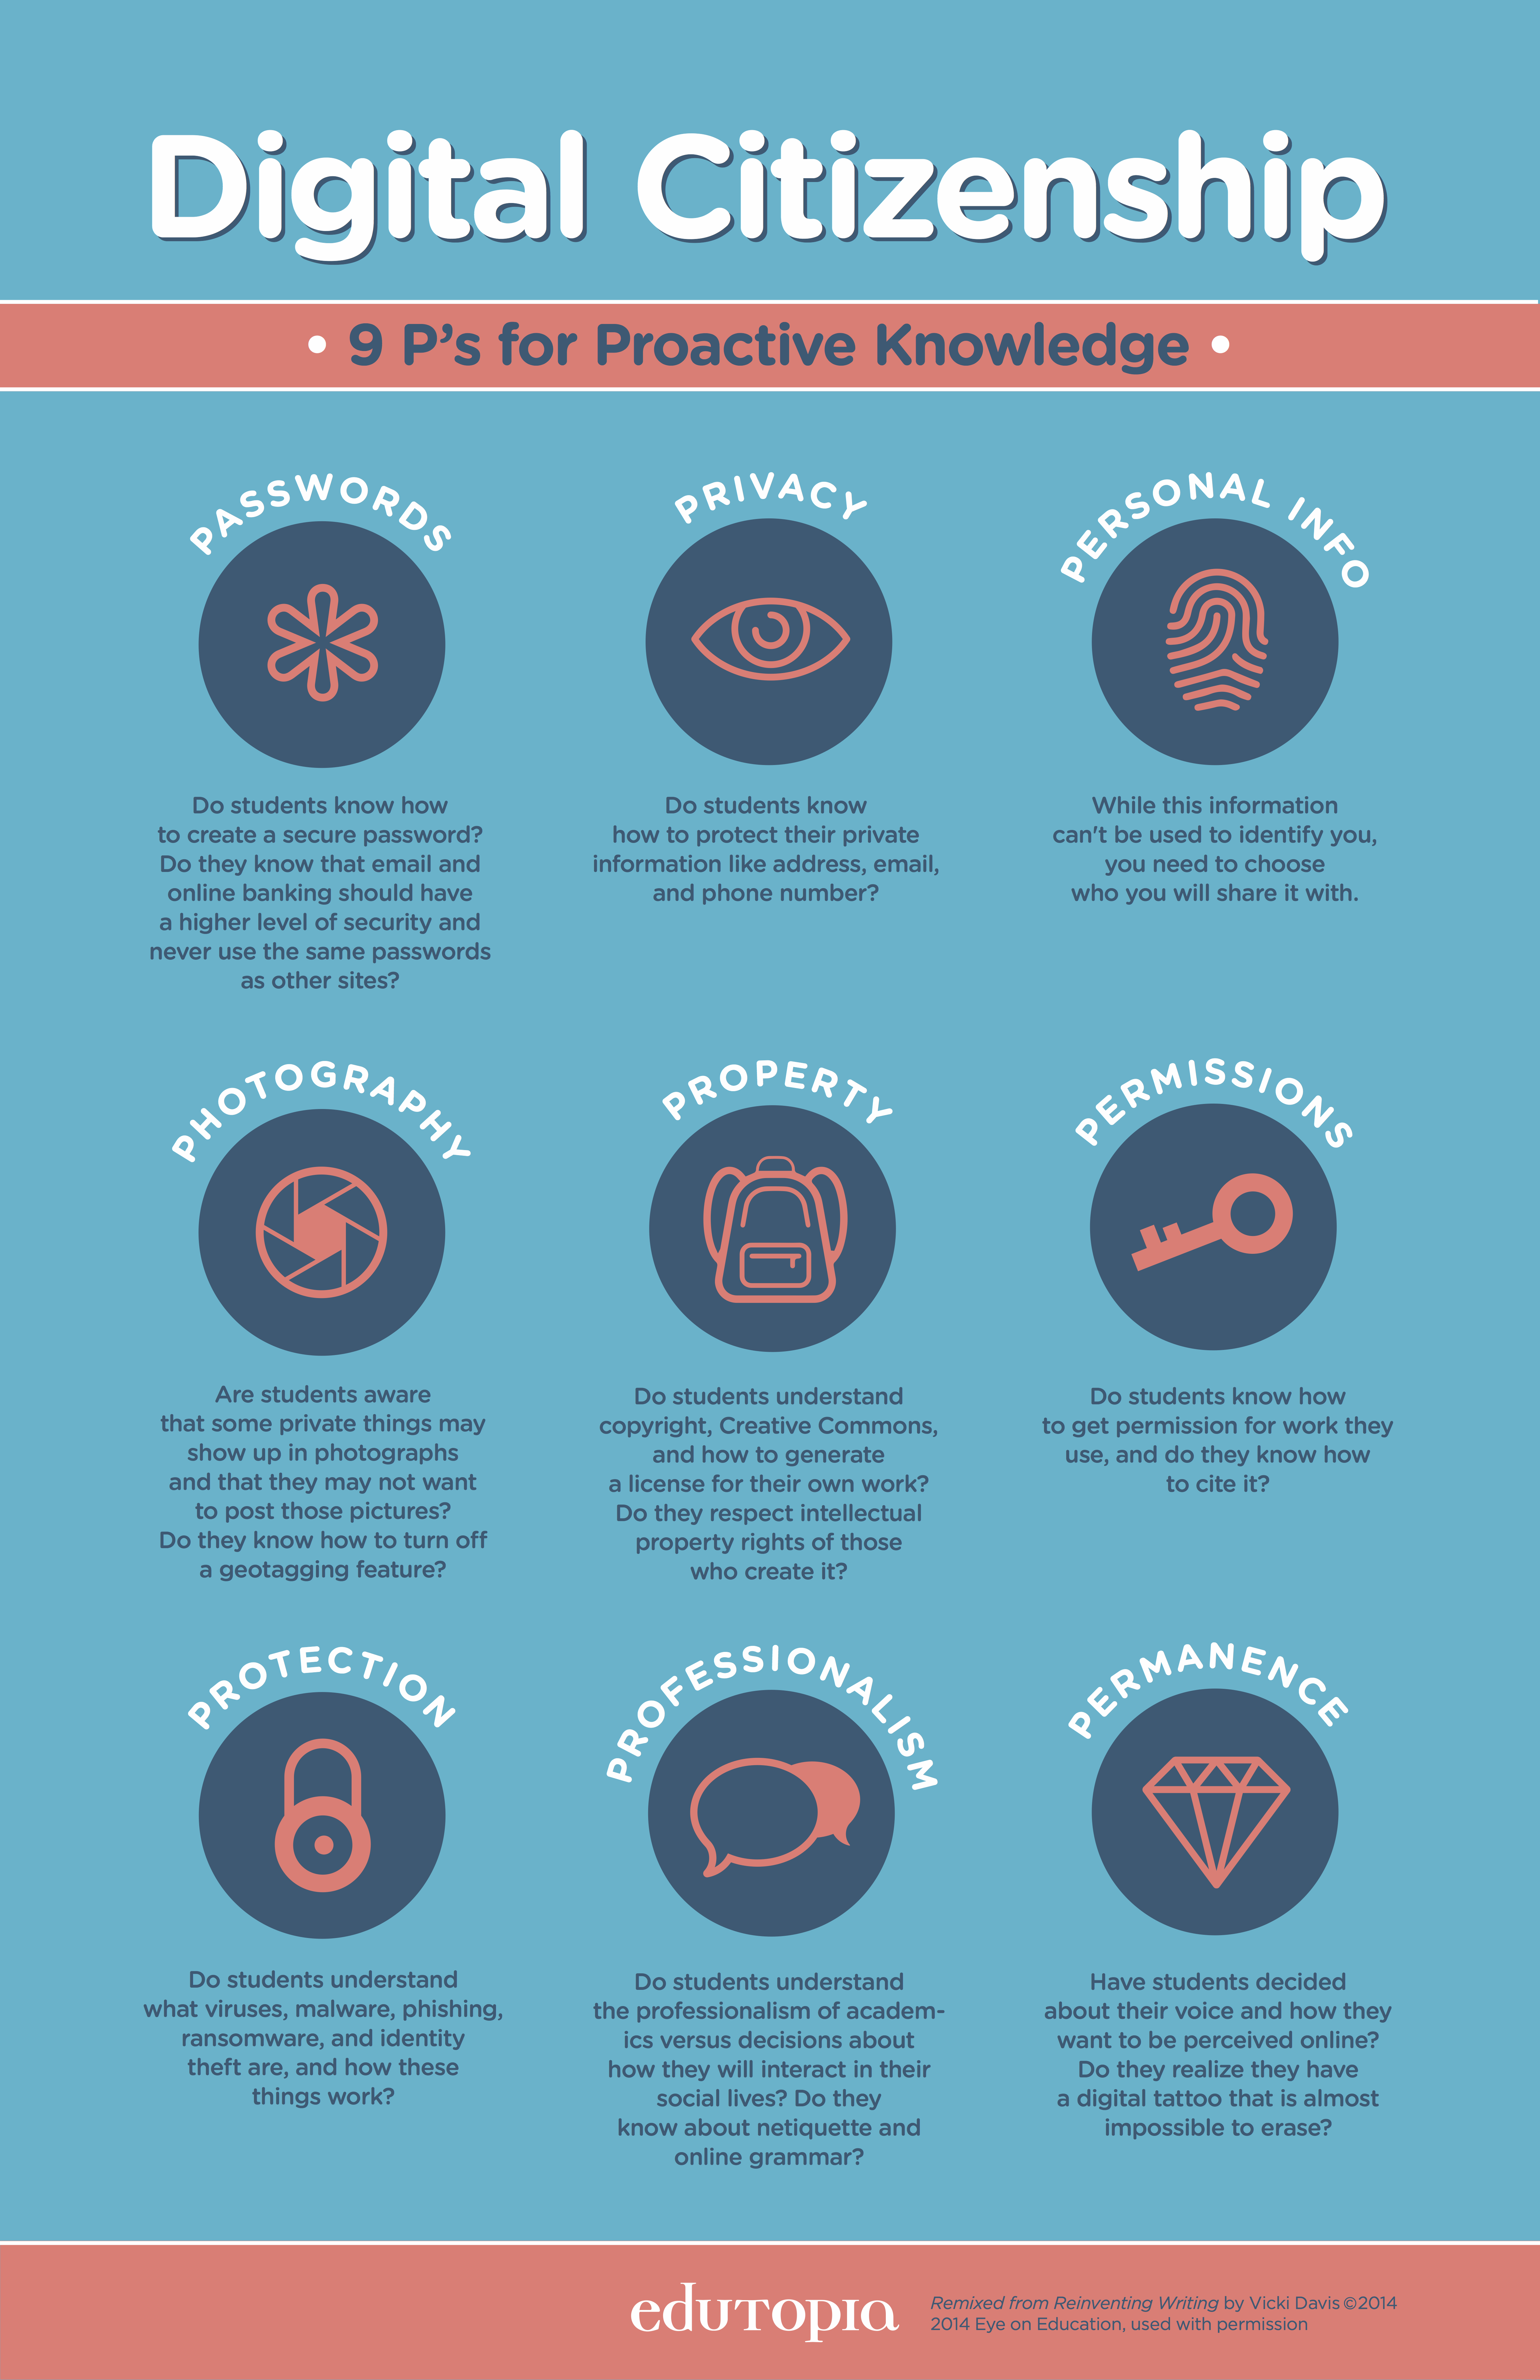 Passwords, property, and permanence. Oh my! The 9 P's for proactive digital citizenship knowledge via @coolcatteacher